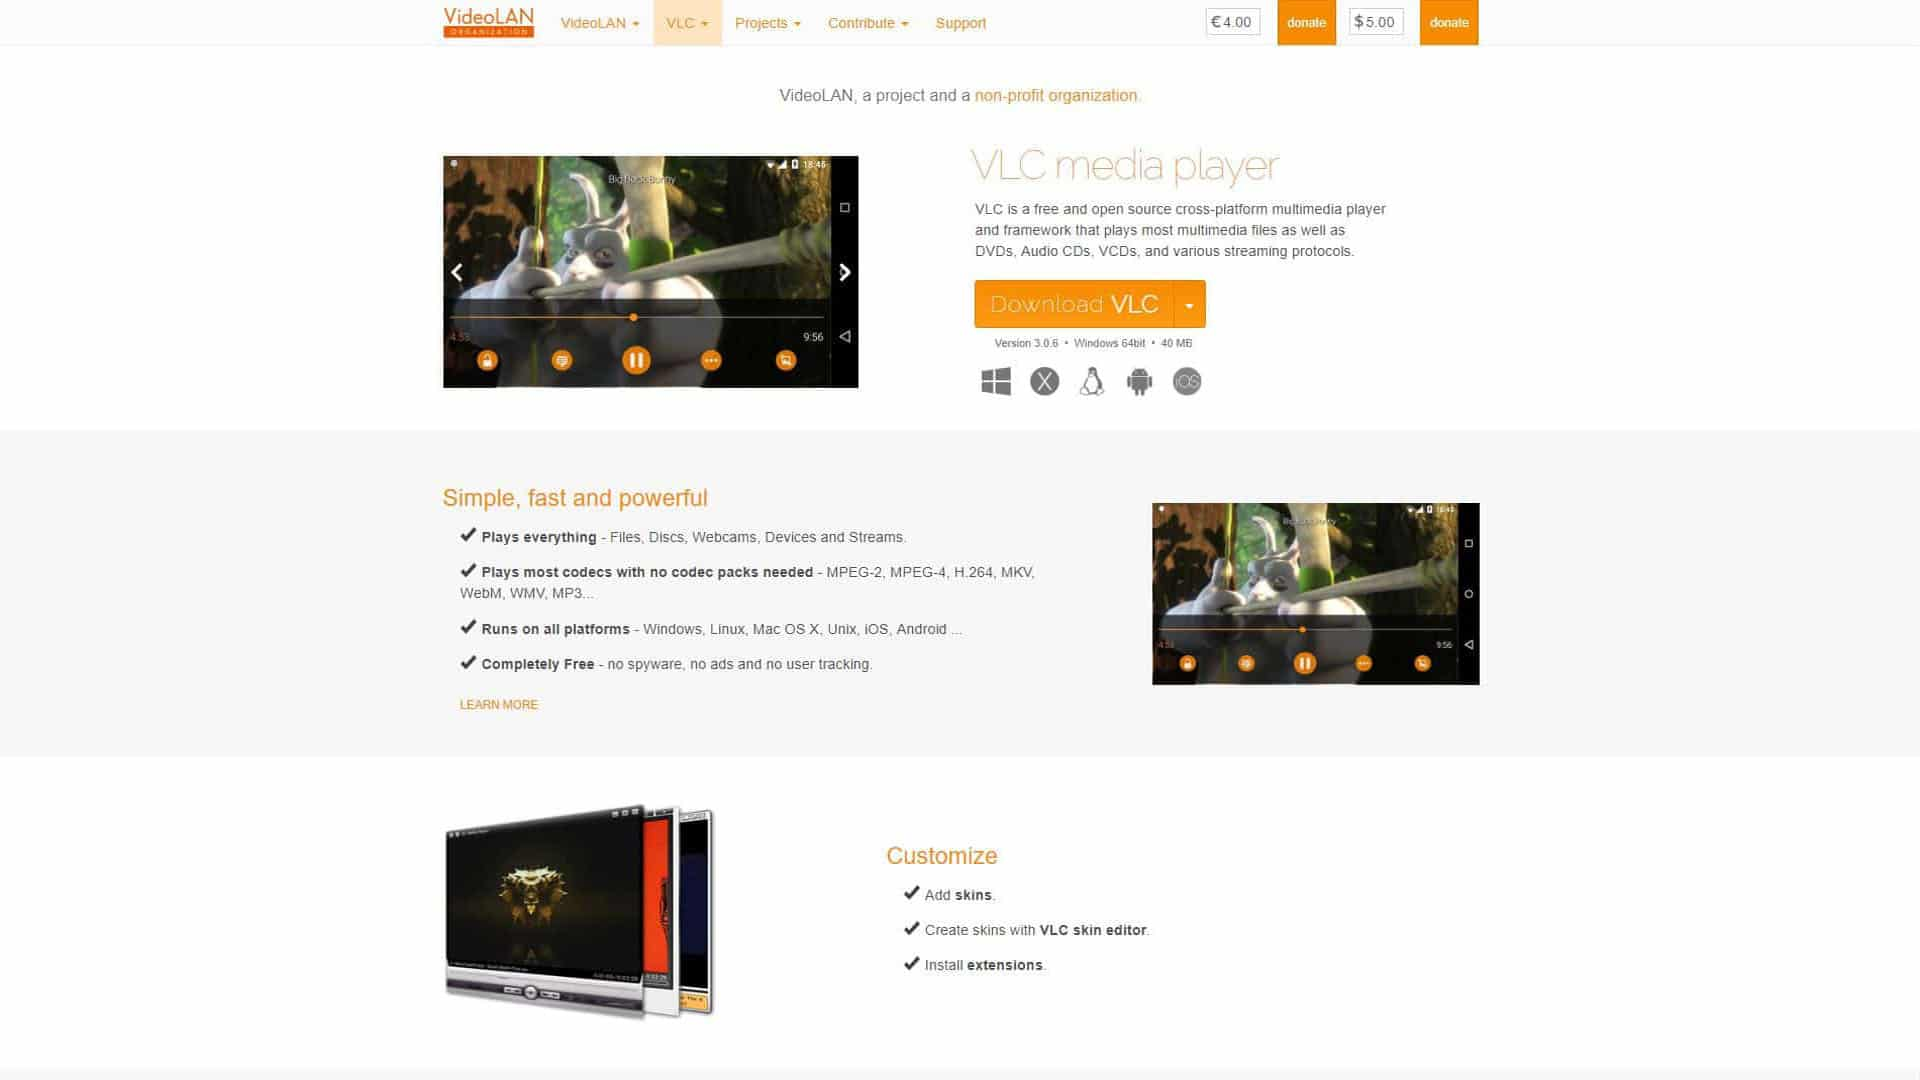 VLC Media Player Home Page